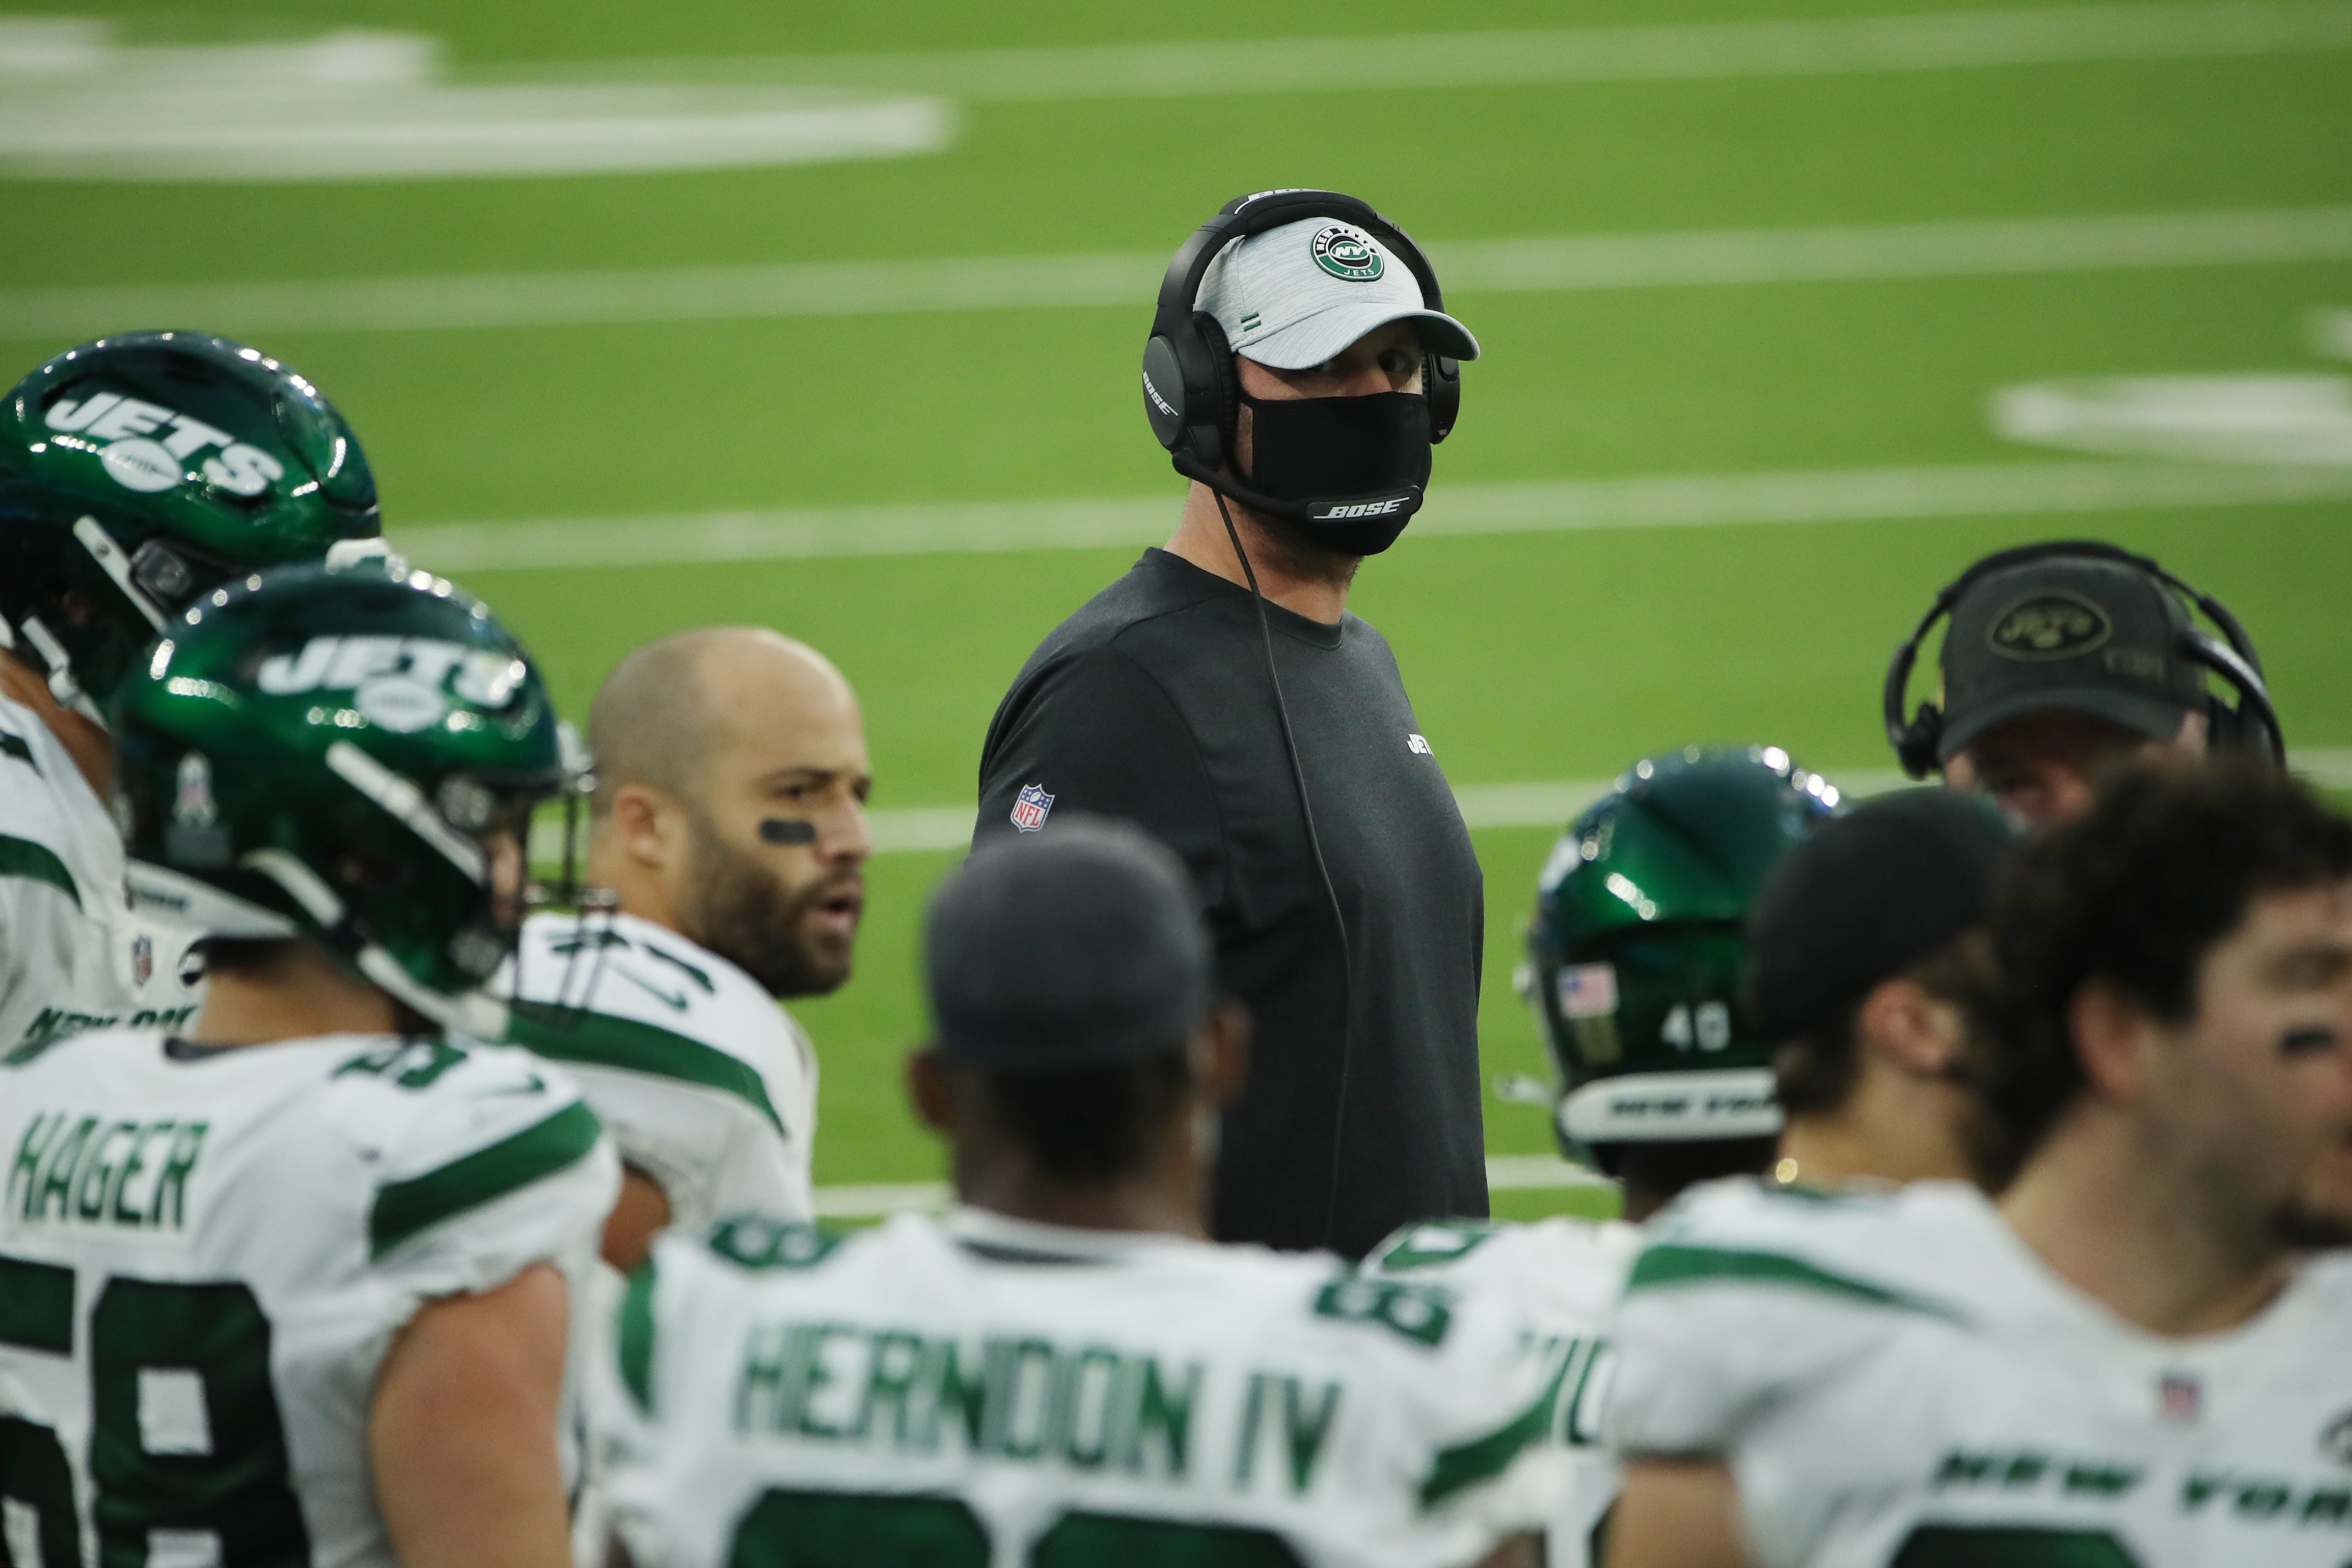 Jets remain bottom feeders in USA TODAY NFL Power Rankings